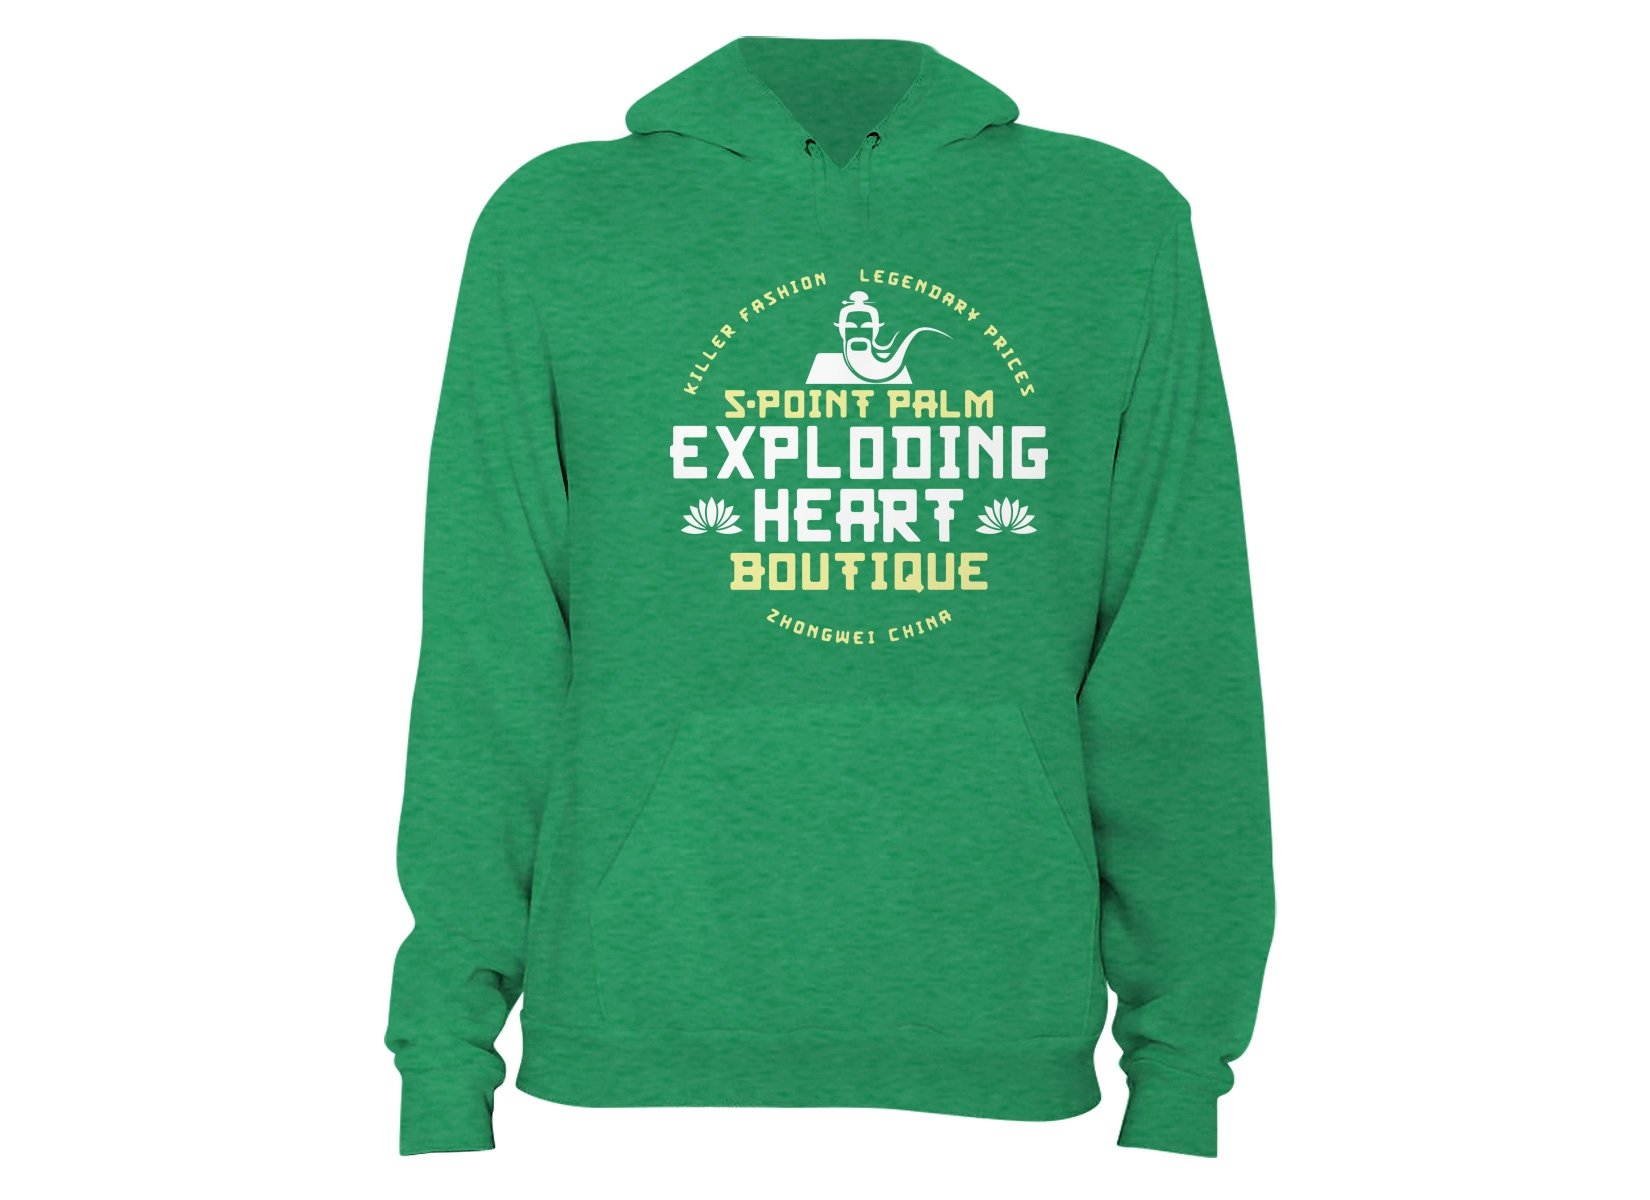 5-Point Palm Exploding Heart Boutique on Hoodie